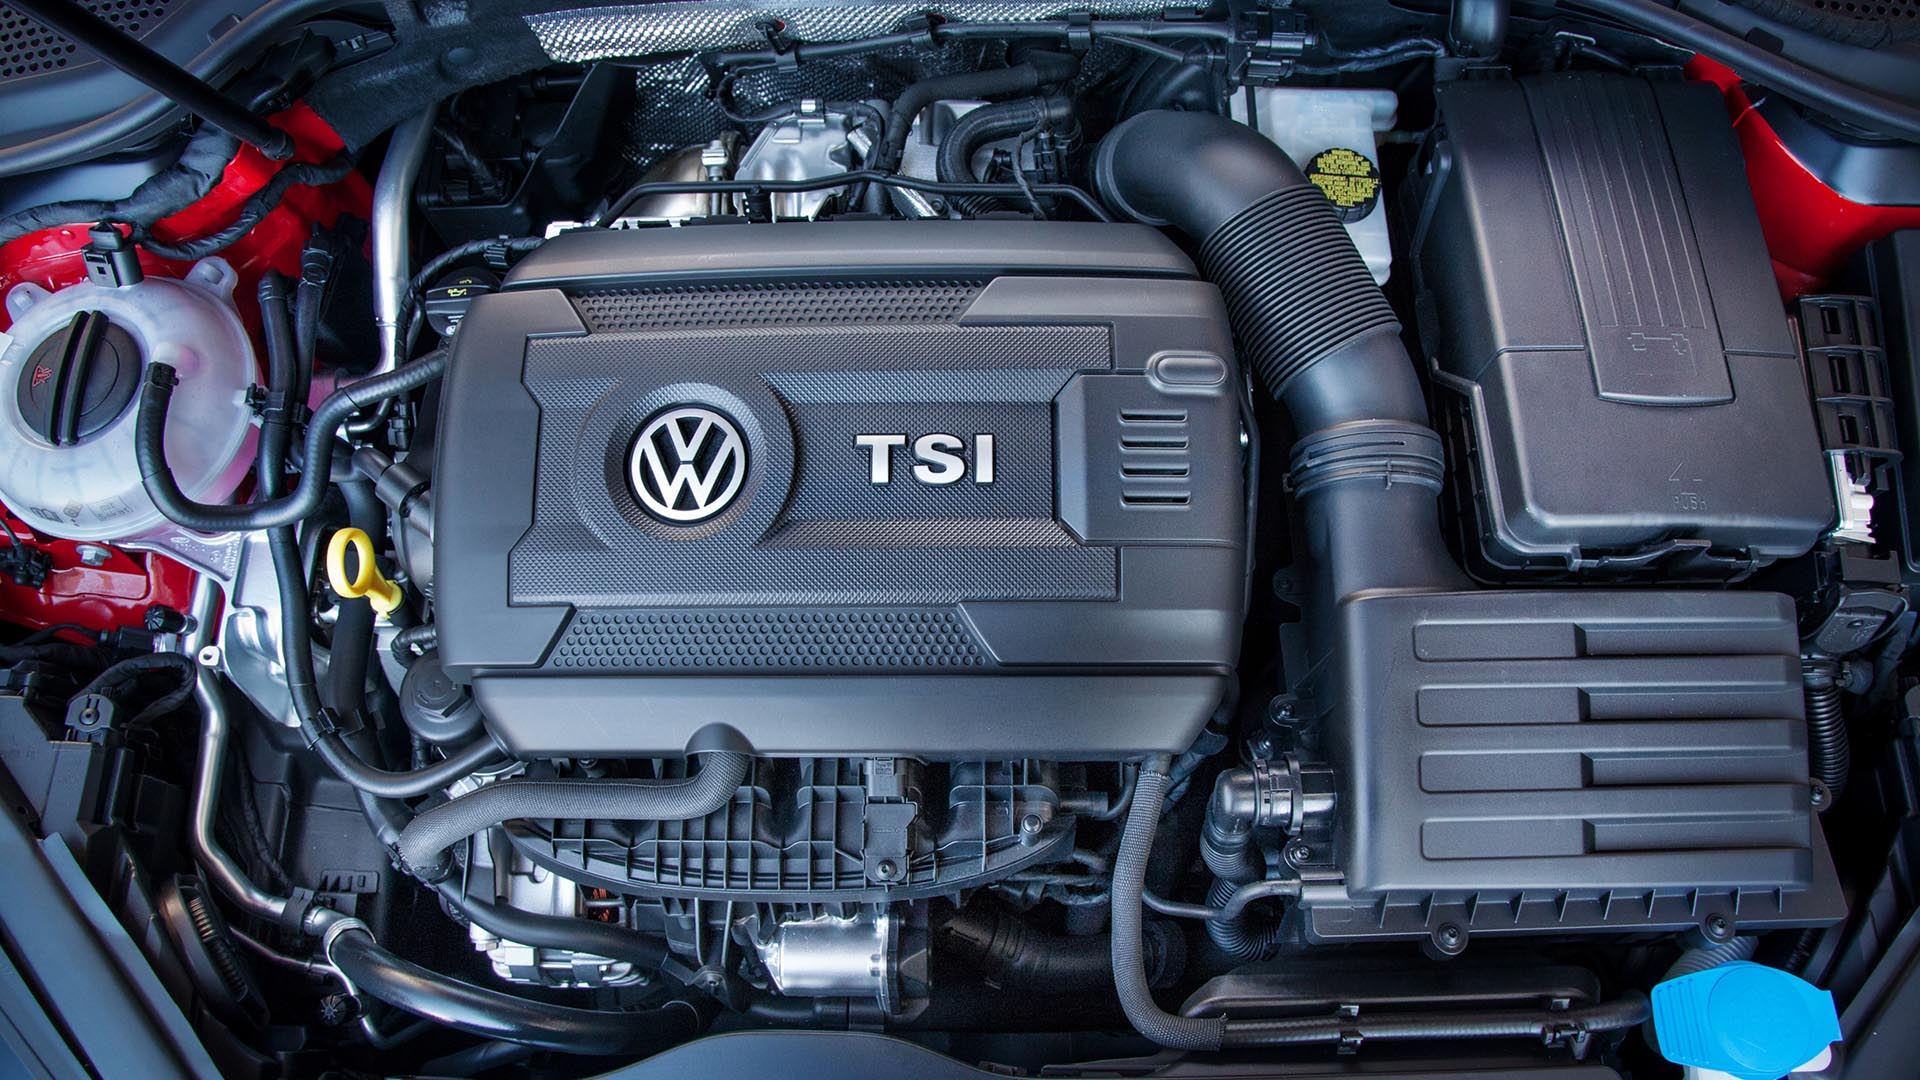 03_VW Gen 3 TSI engine cover